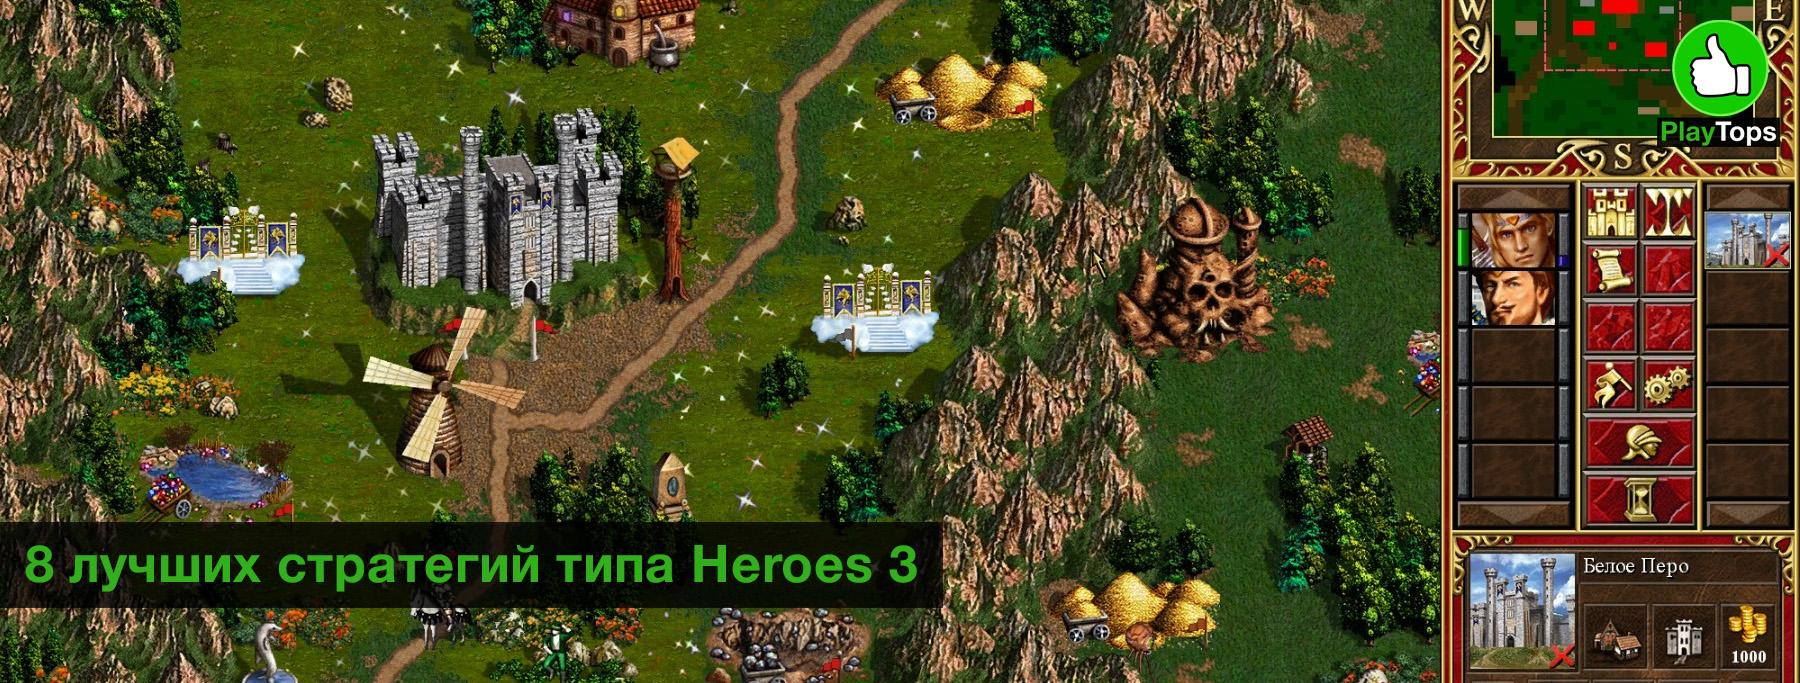 Обзор 8 стратегий наподобие Heroes of Might and Magic.